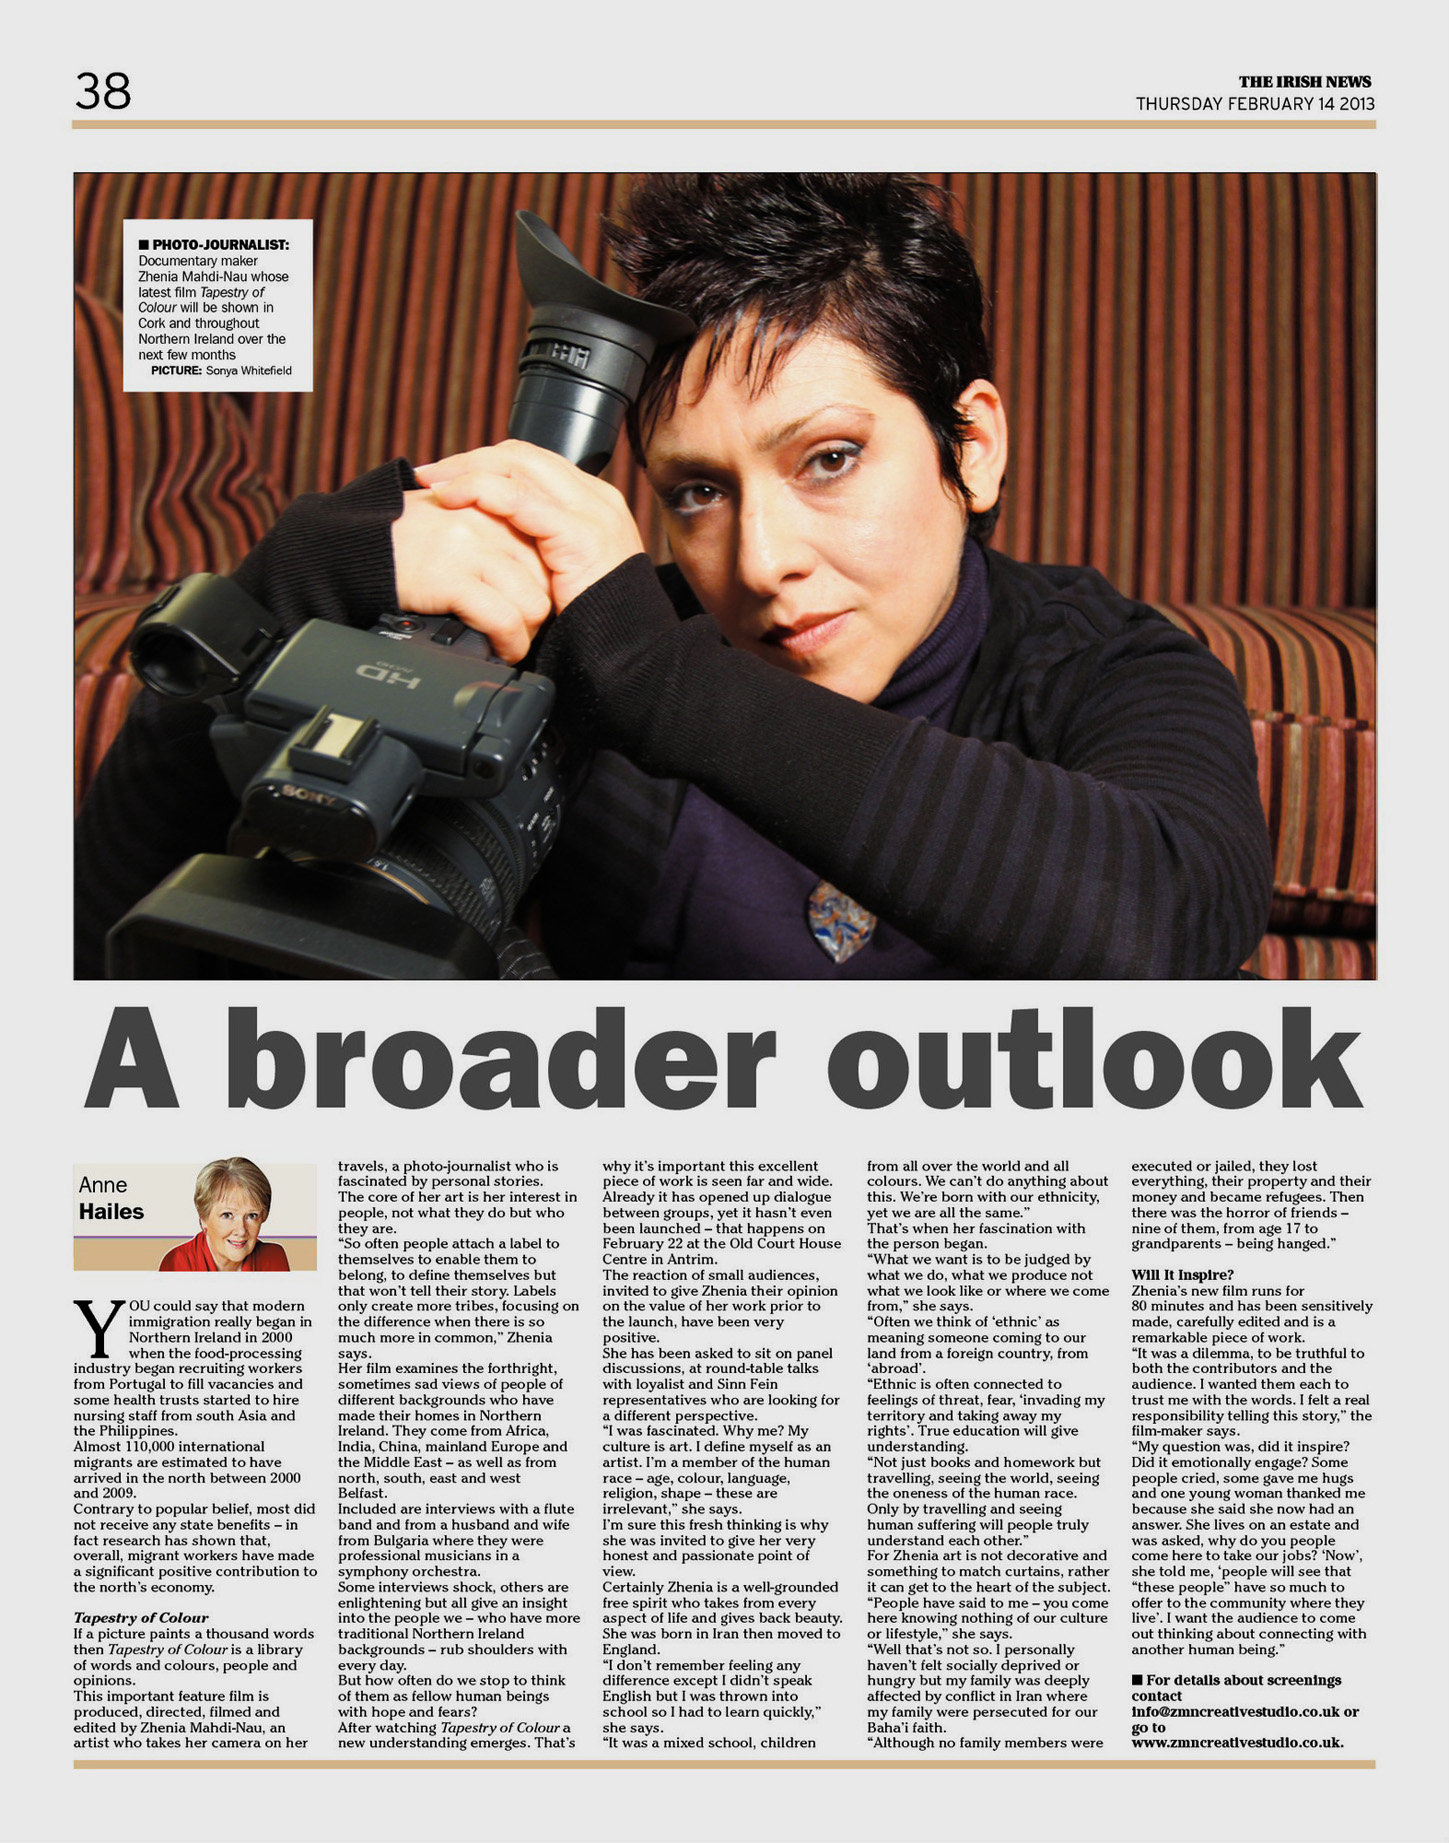 Full page feature in Irish News